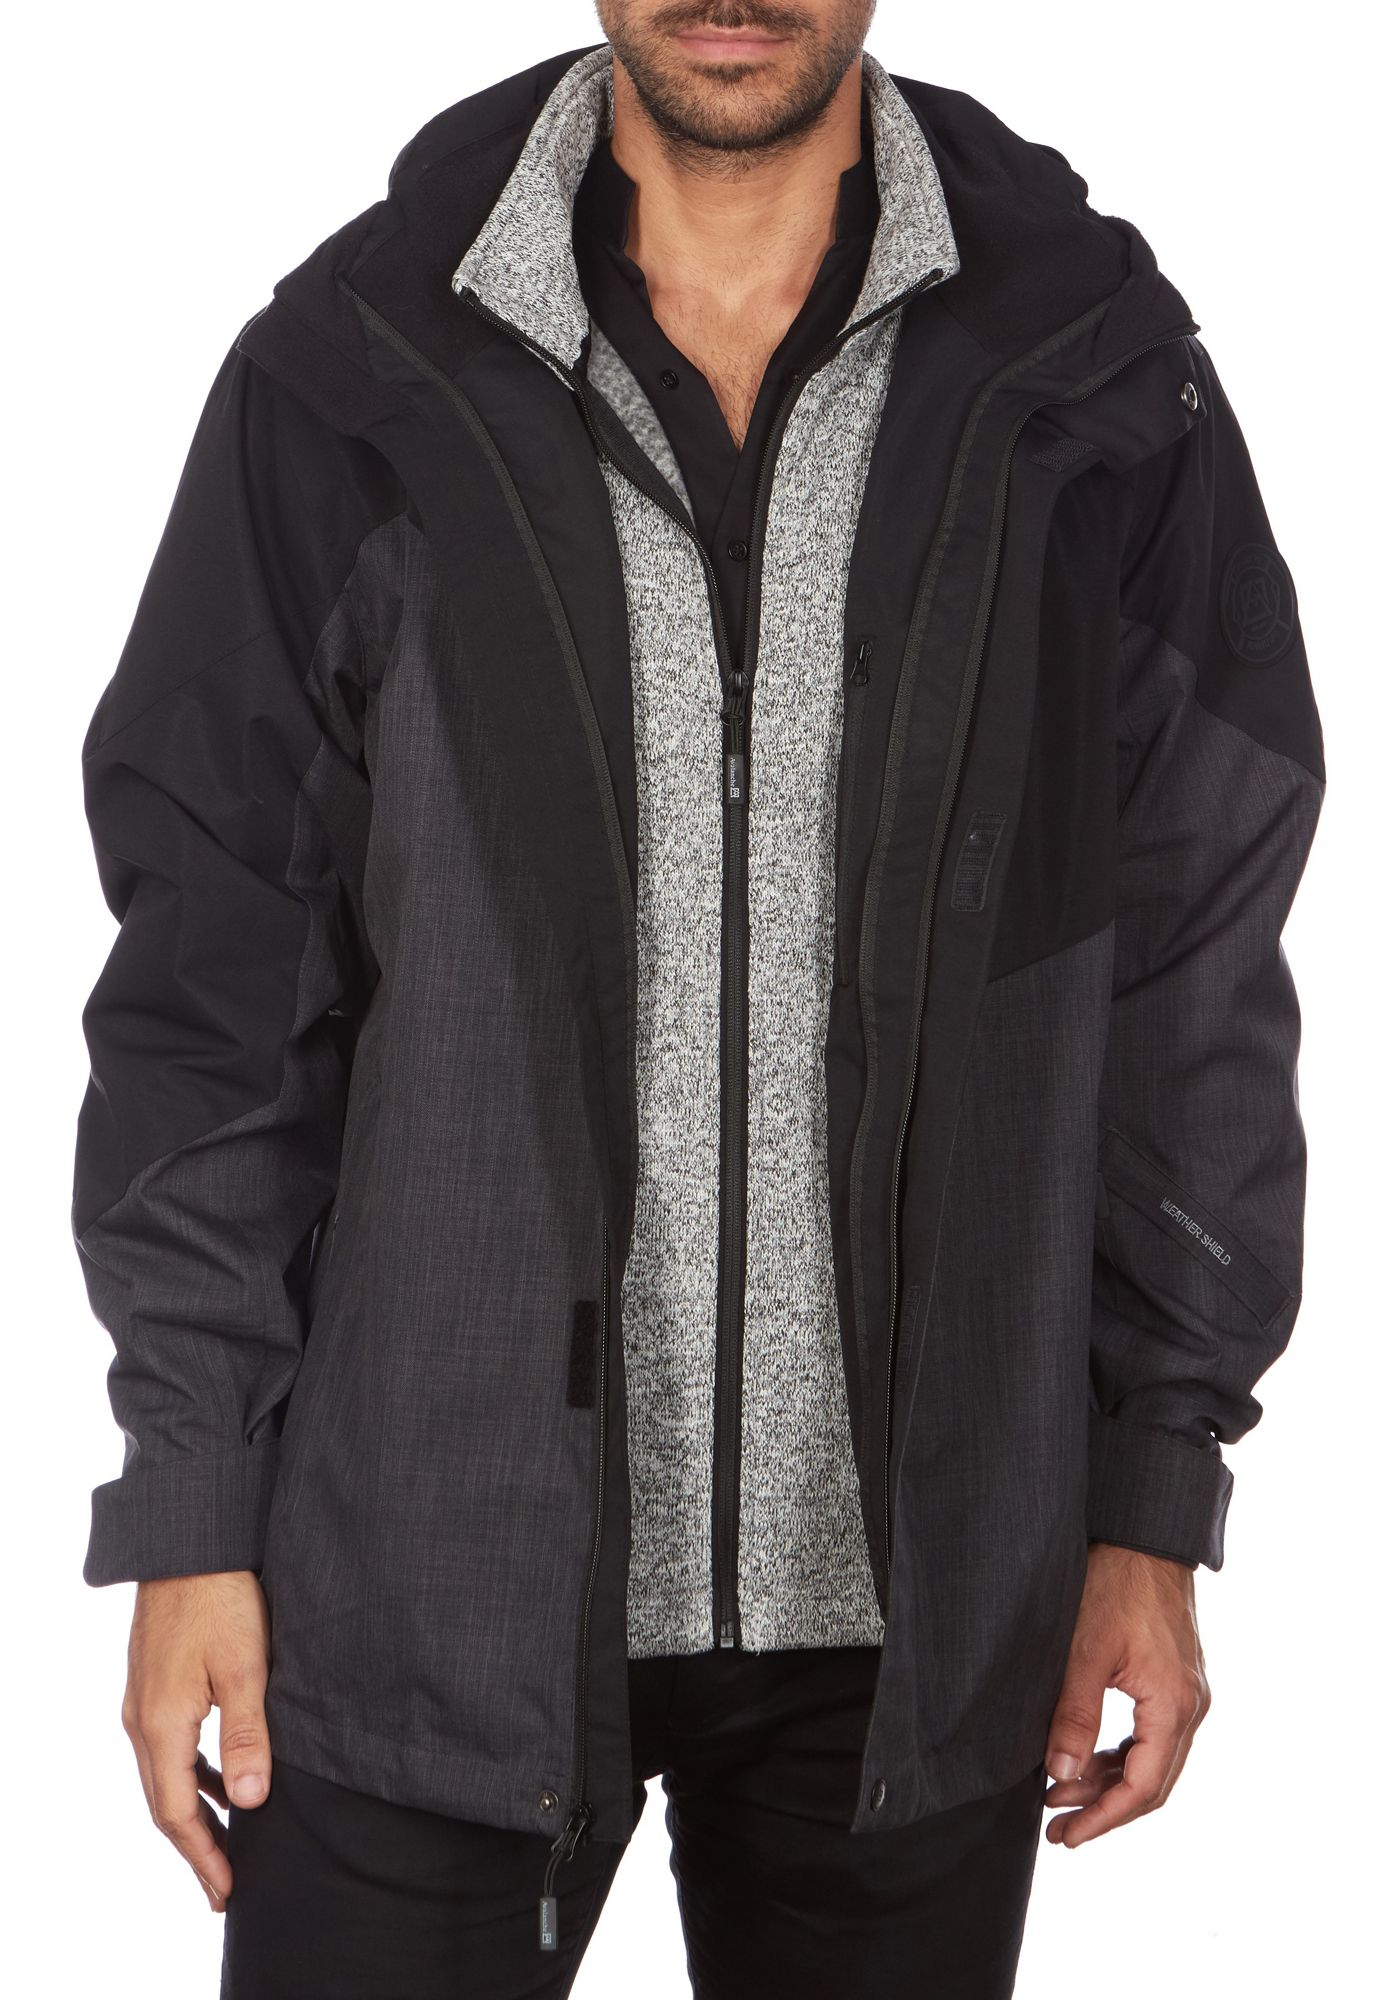 Avalanche Men's Hooded 3-in-1 System Jacket